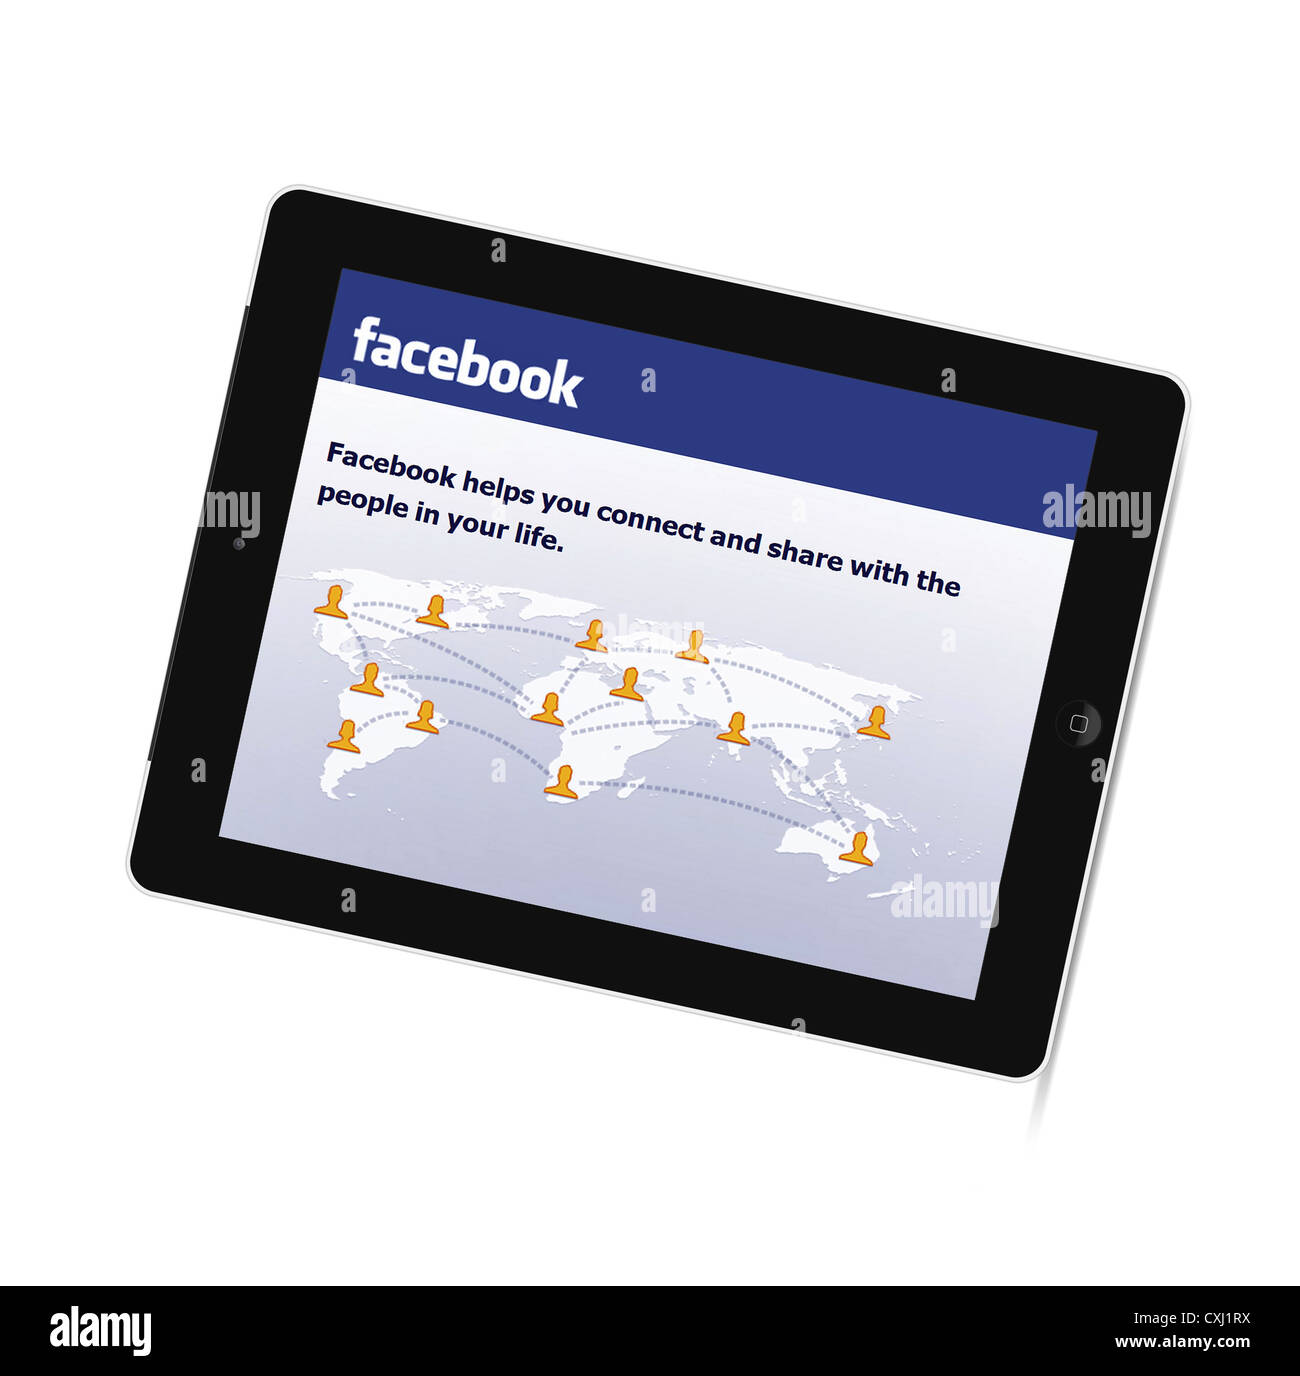 Facebook on the New Generation iPad tablet from Apple - Stock Image